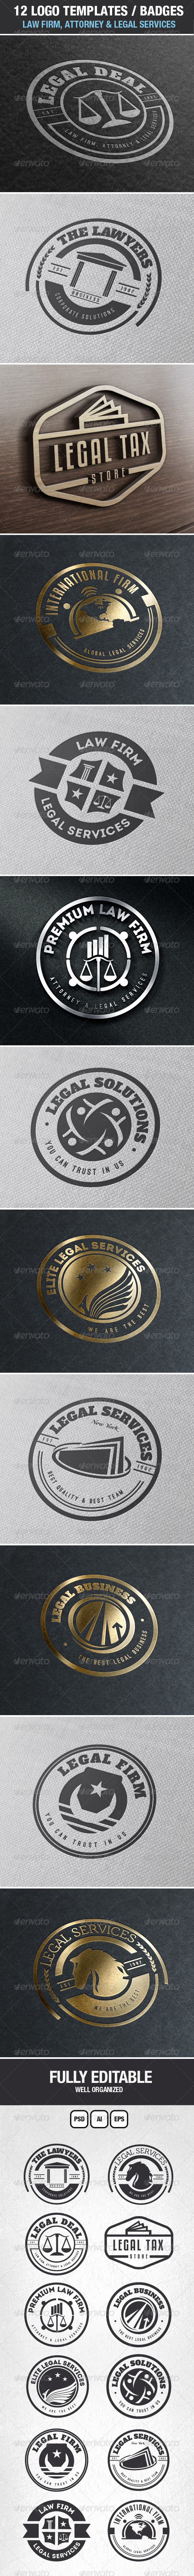 GraphicRiver Law Firm Attorney & Legal Services Logos & Badges 7048297